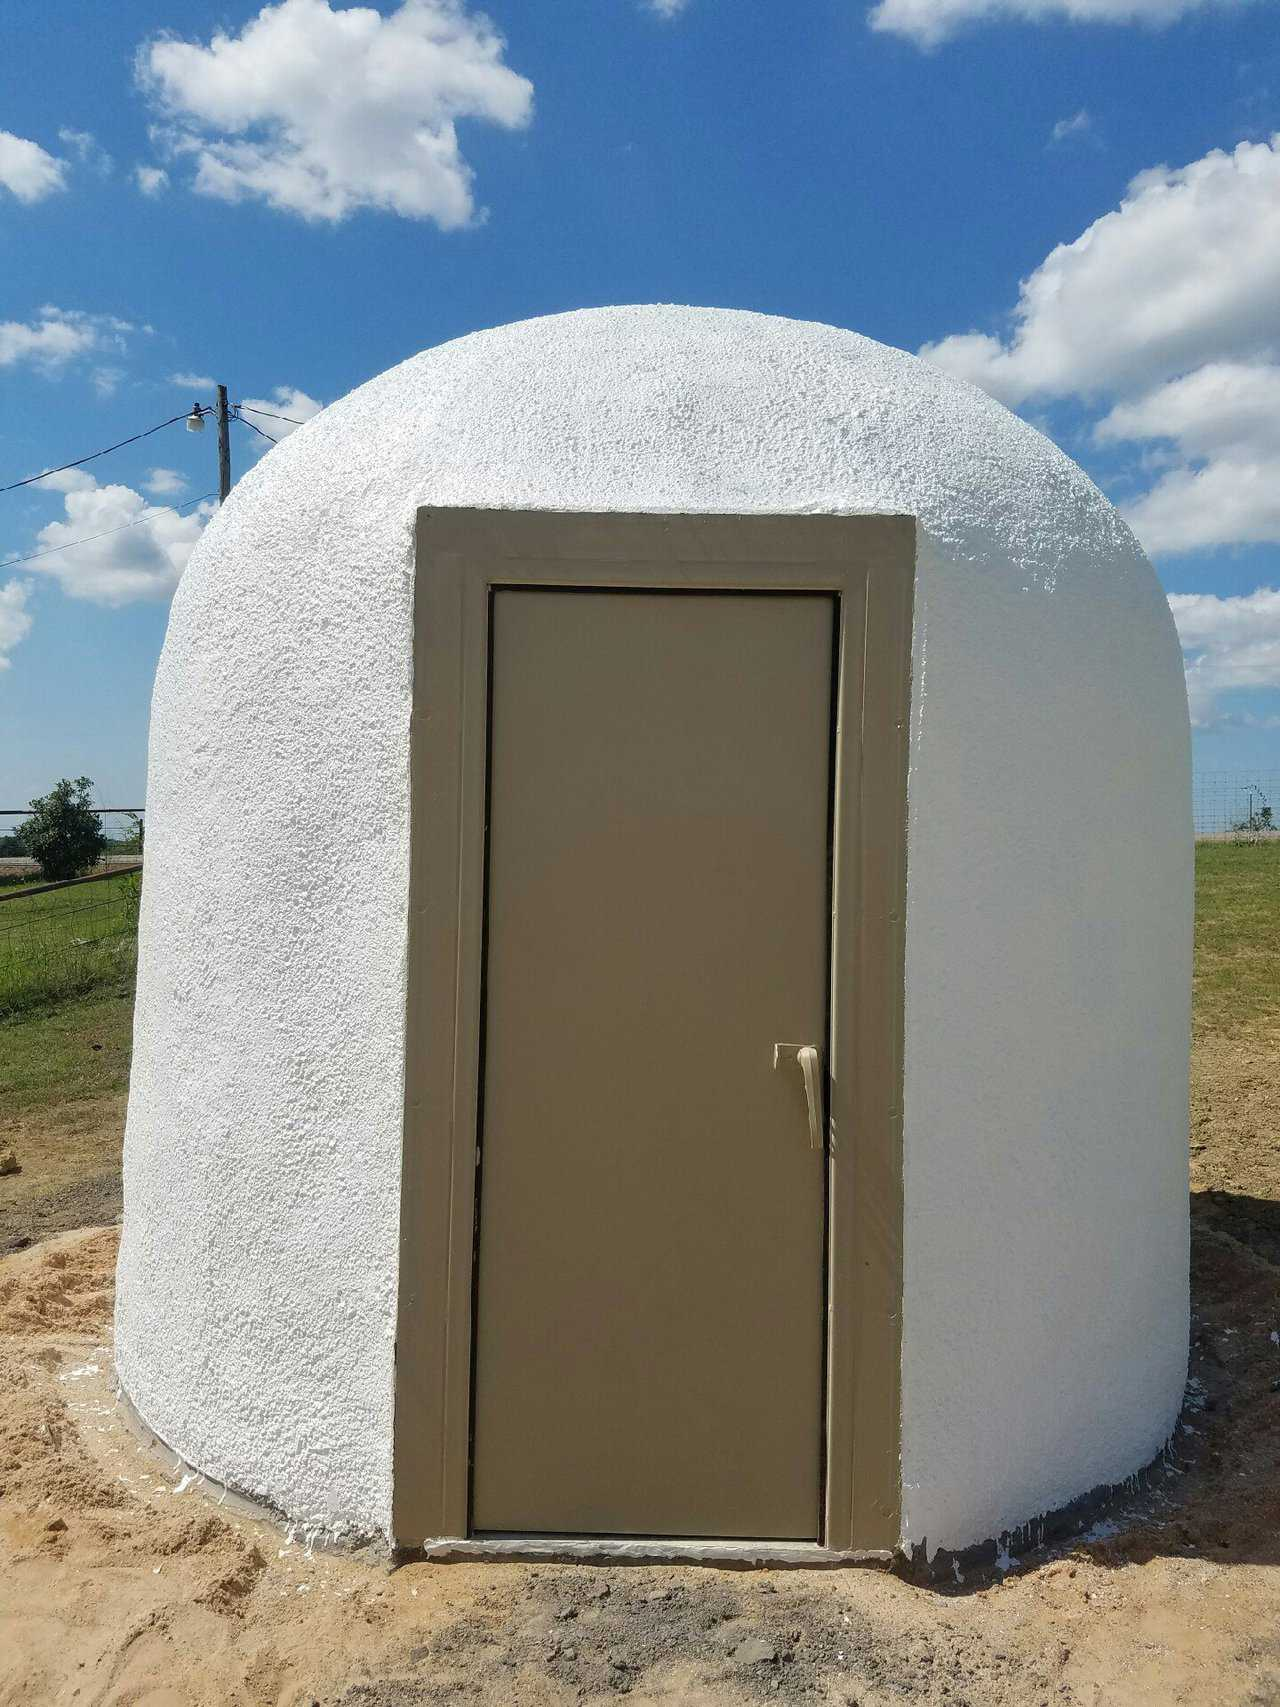 The Tornado Tamer storm door completes the tornado shelter. & A Minion ready to protect against storms | Monolithic Dome Institute